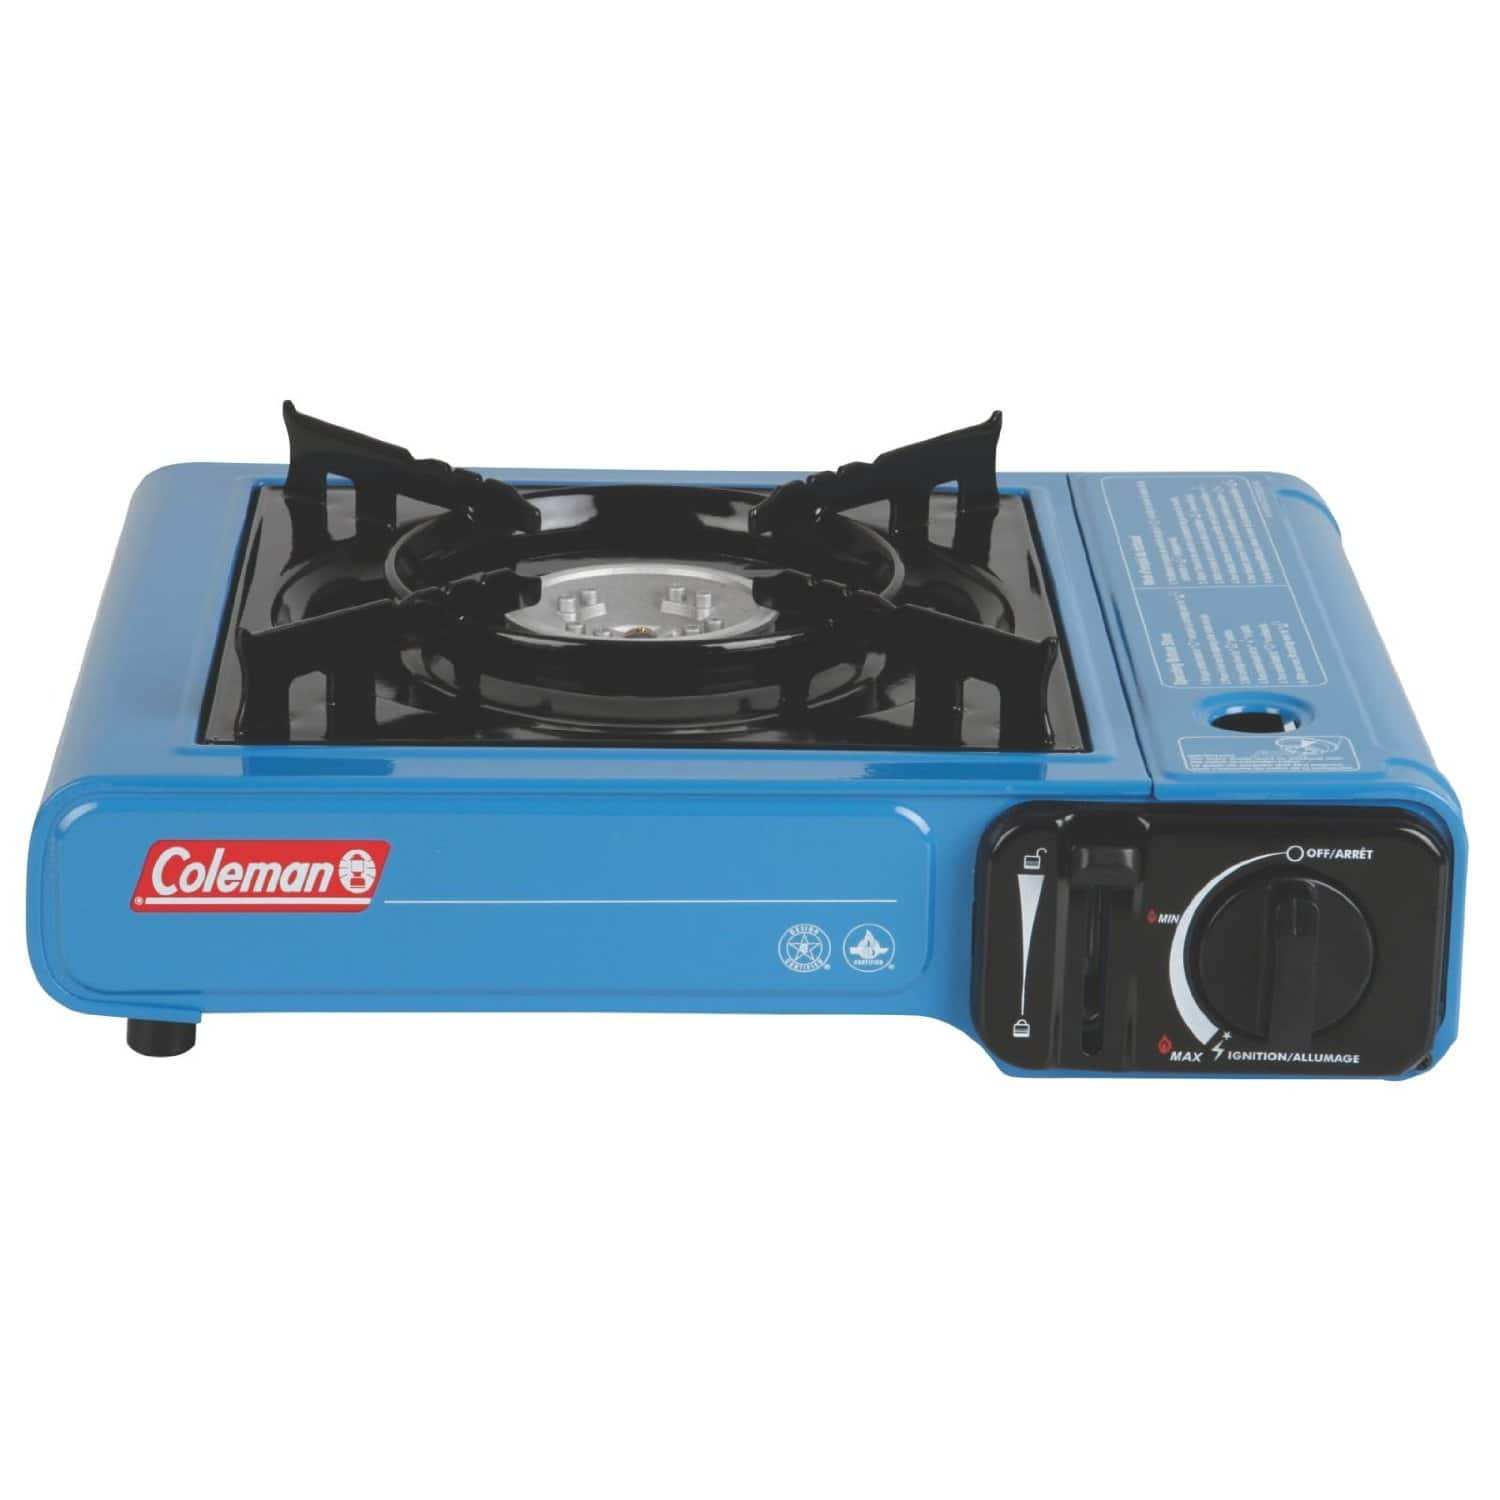 Coleman Butane Instastart Stove $15.29 FS with Prime